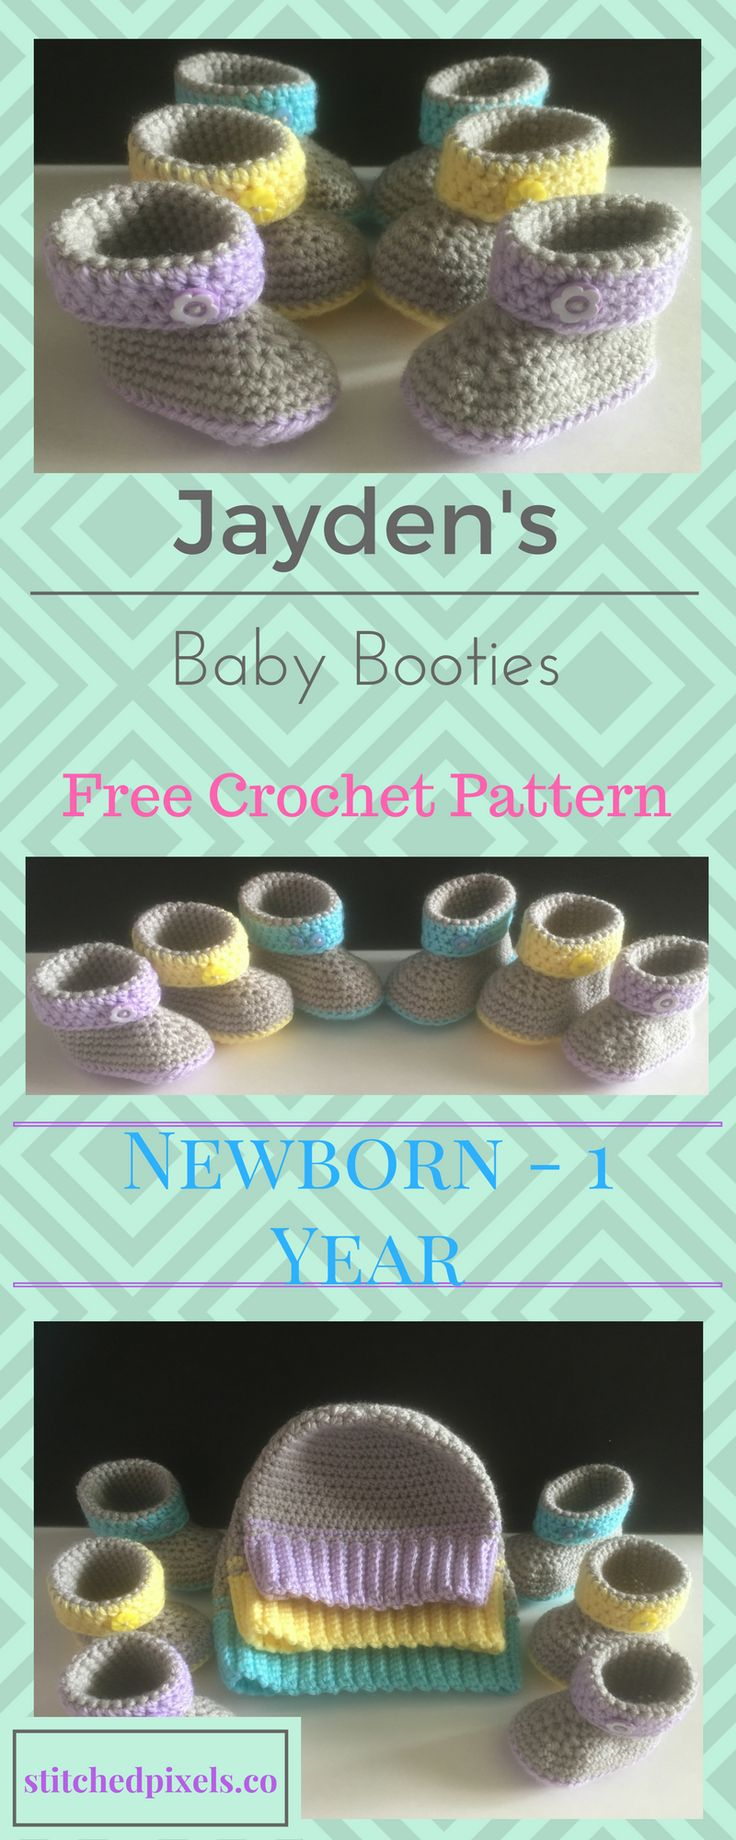 The second part of the Jayden baby set is ready to go! It's bootie time!